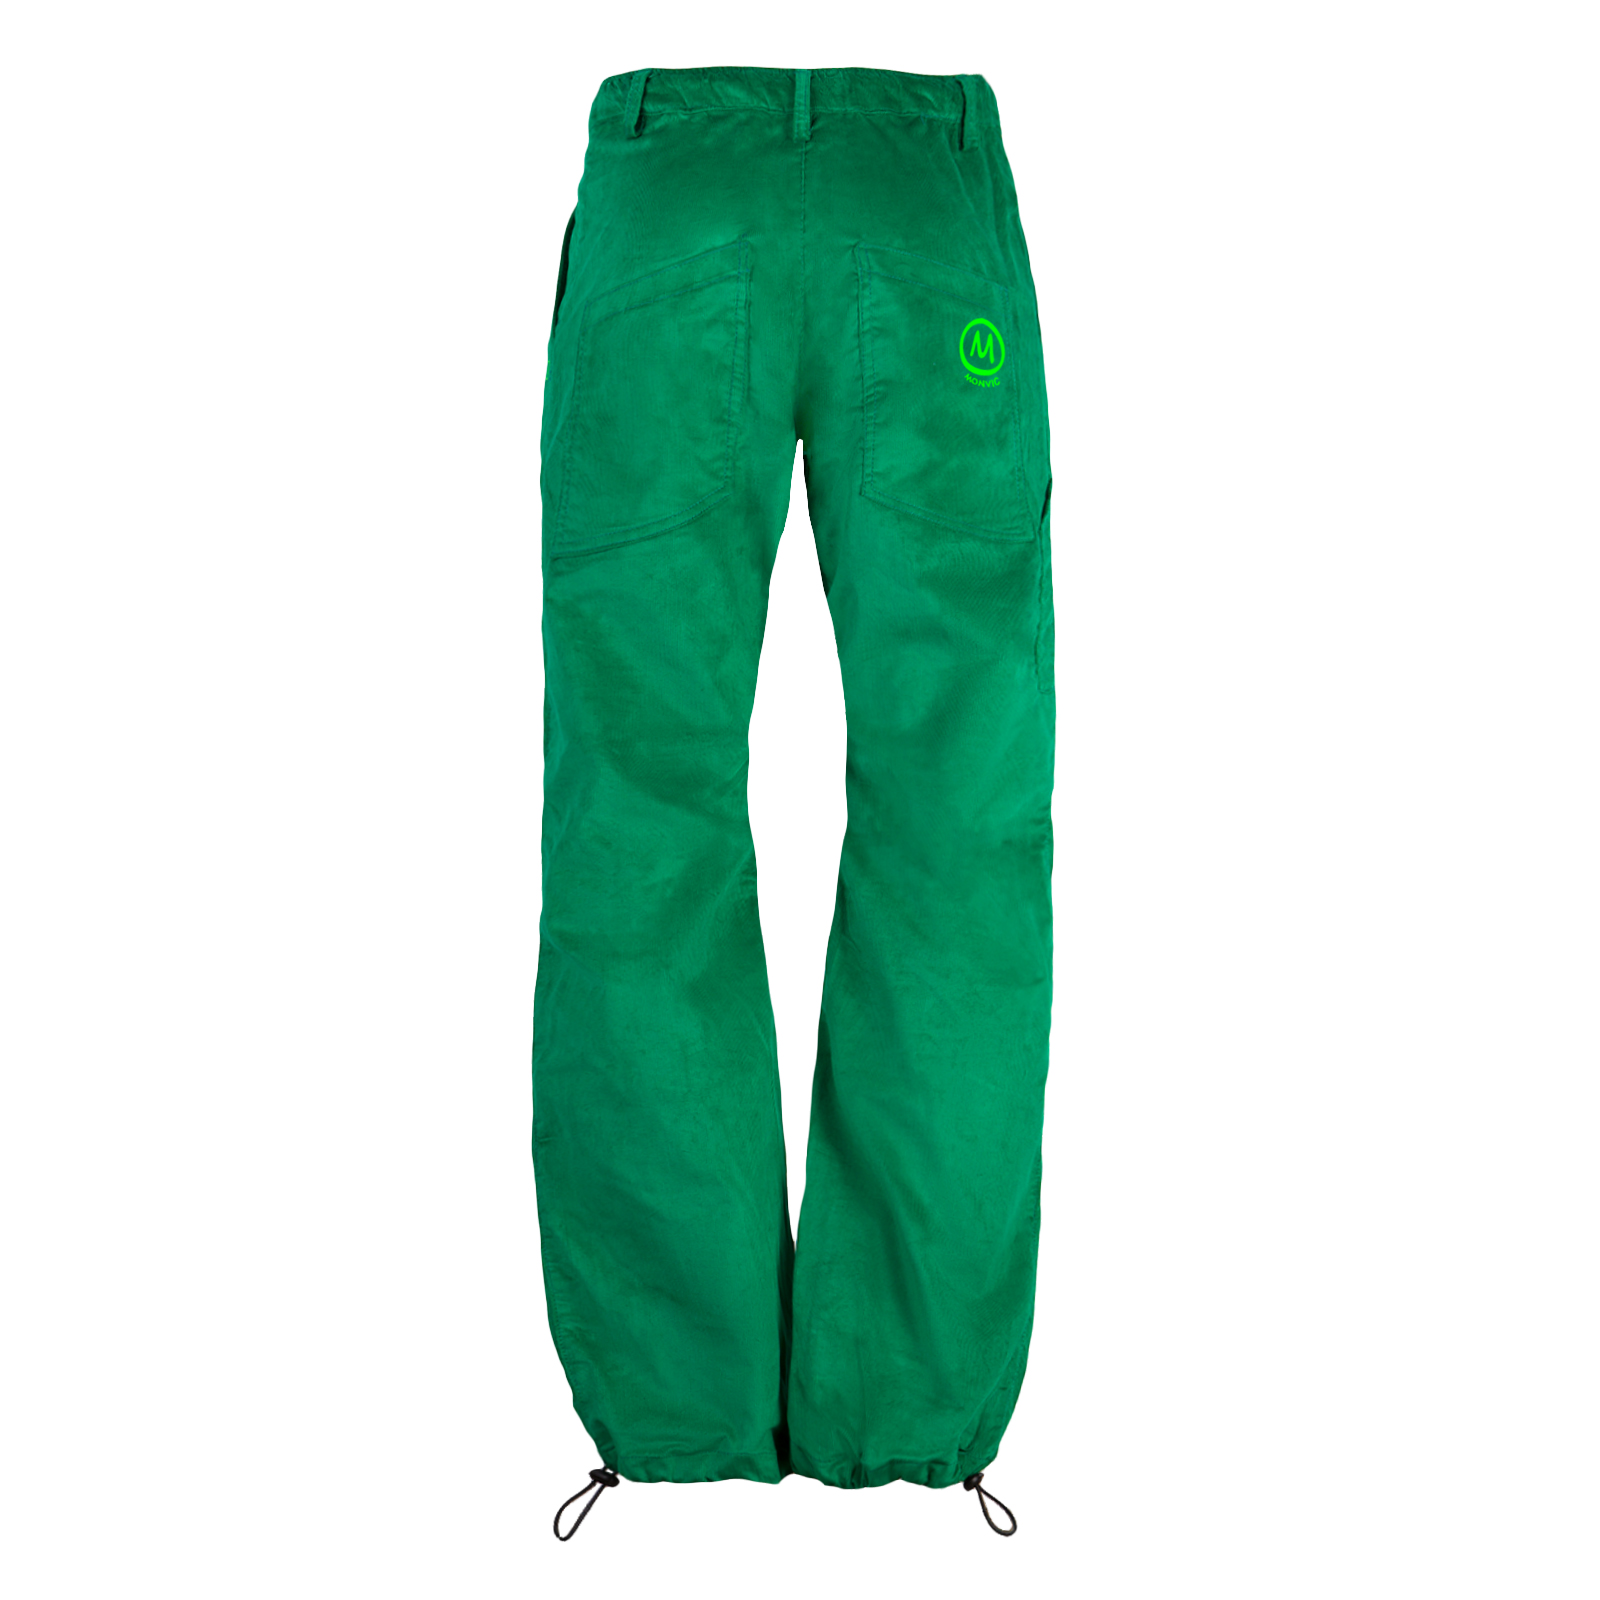 Men's featherwale trousers forest green for climbing GRILLO Monvic